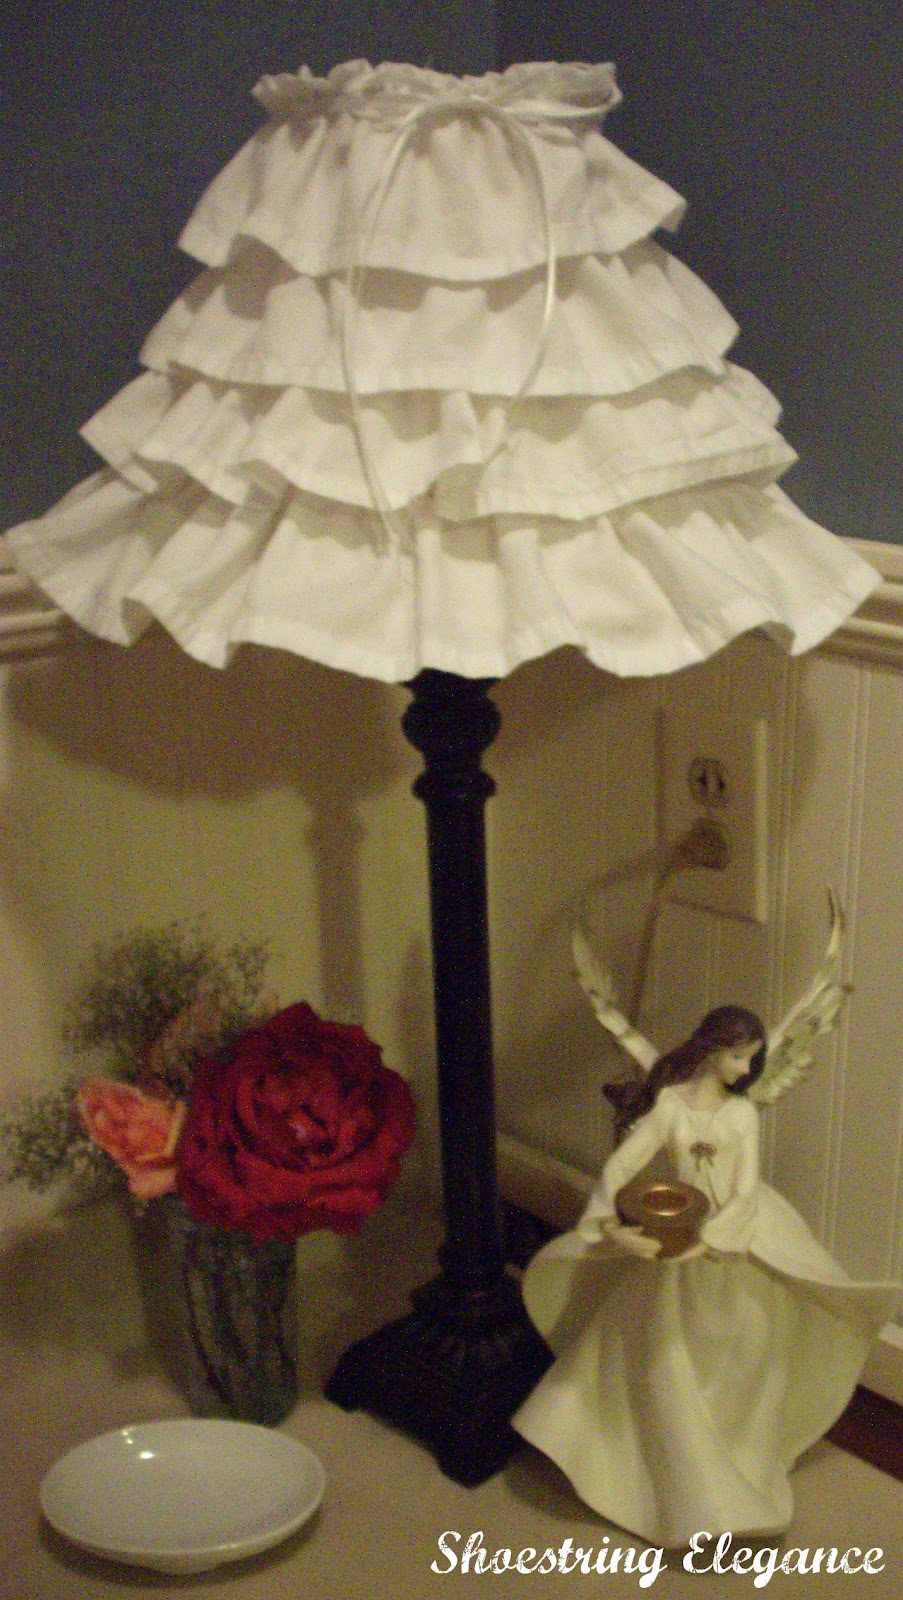 Shoestring elegance no cost lampshade redo for Redo lamp shades